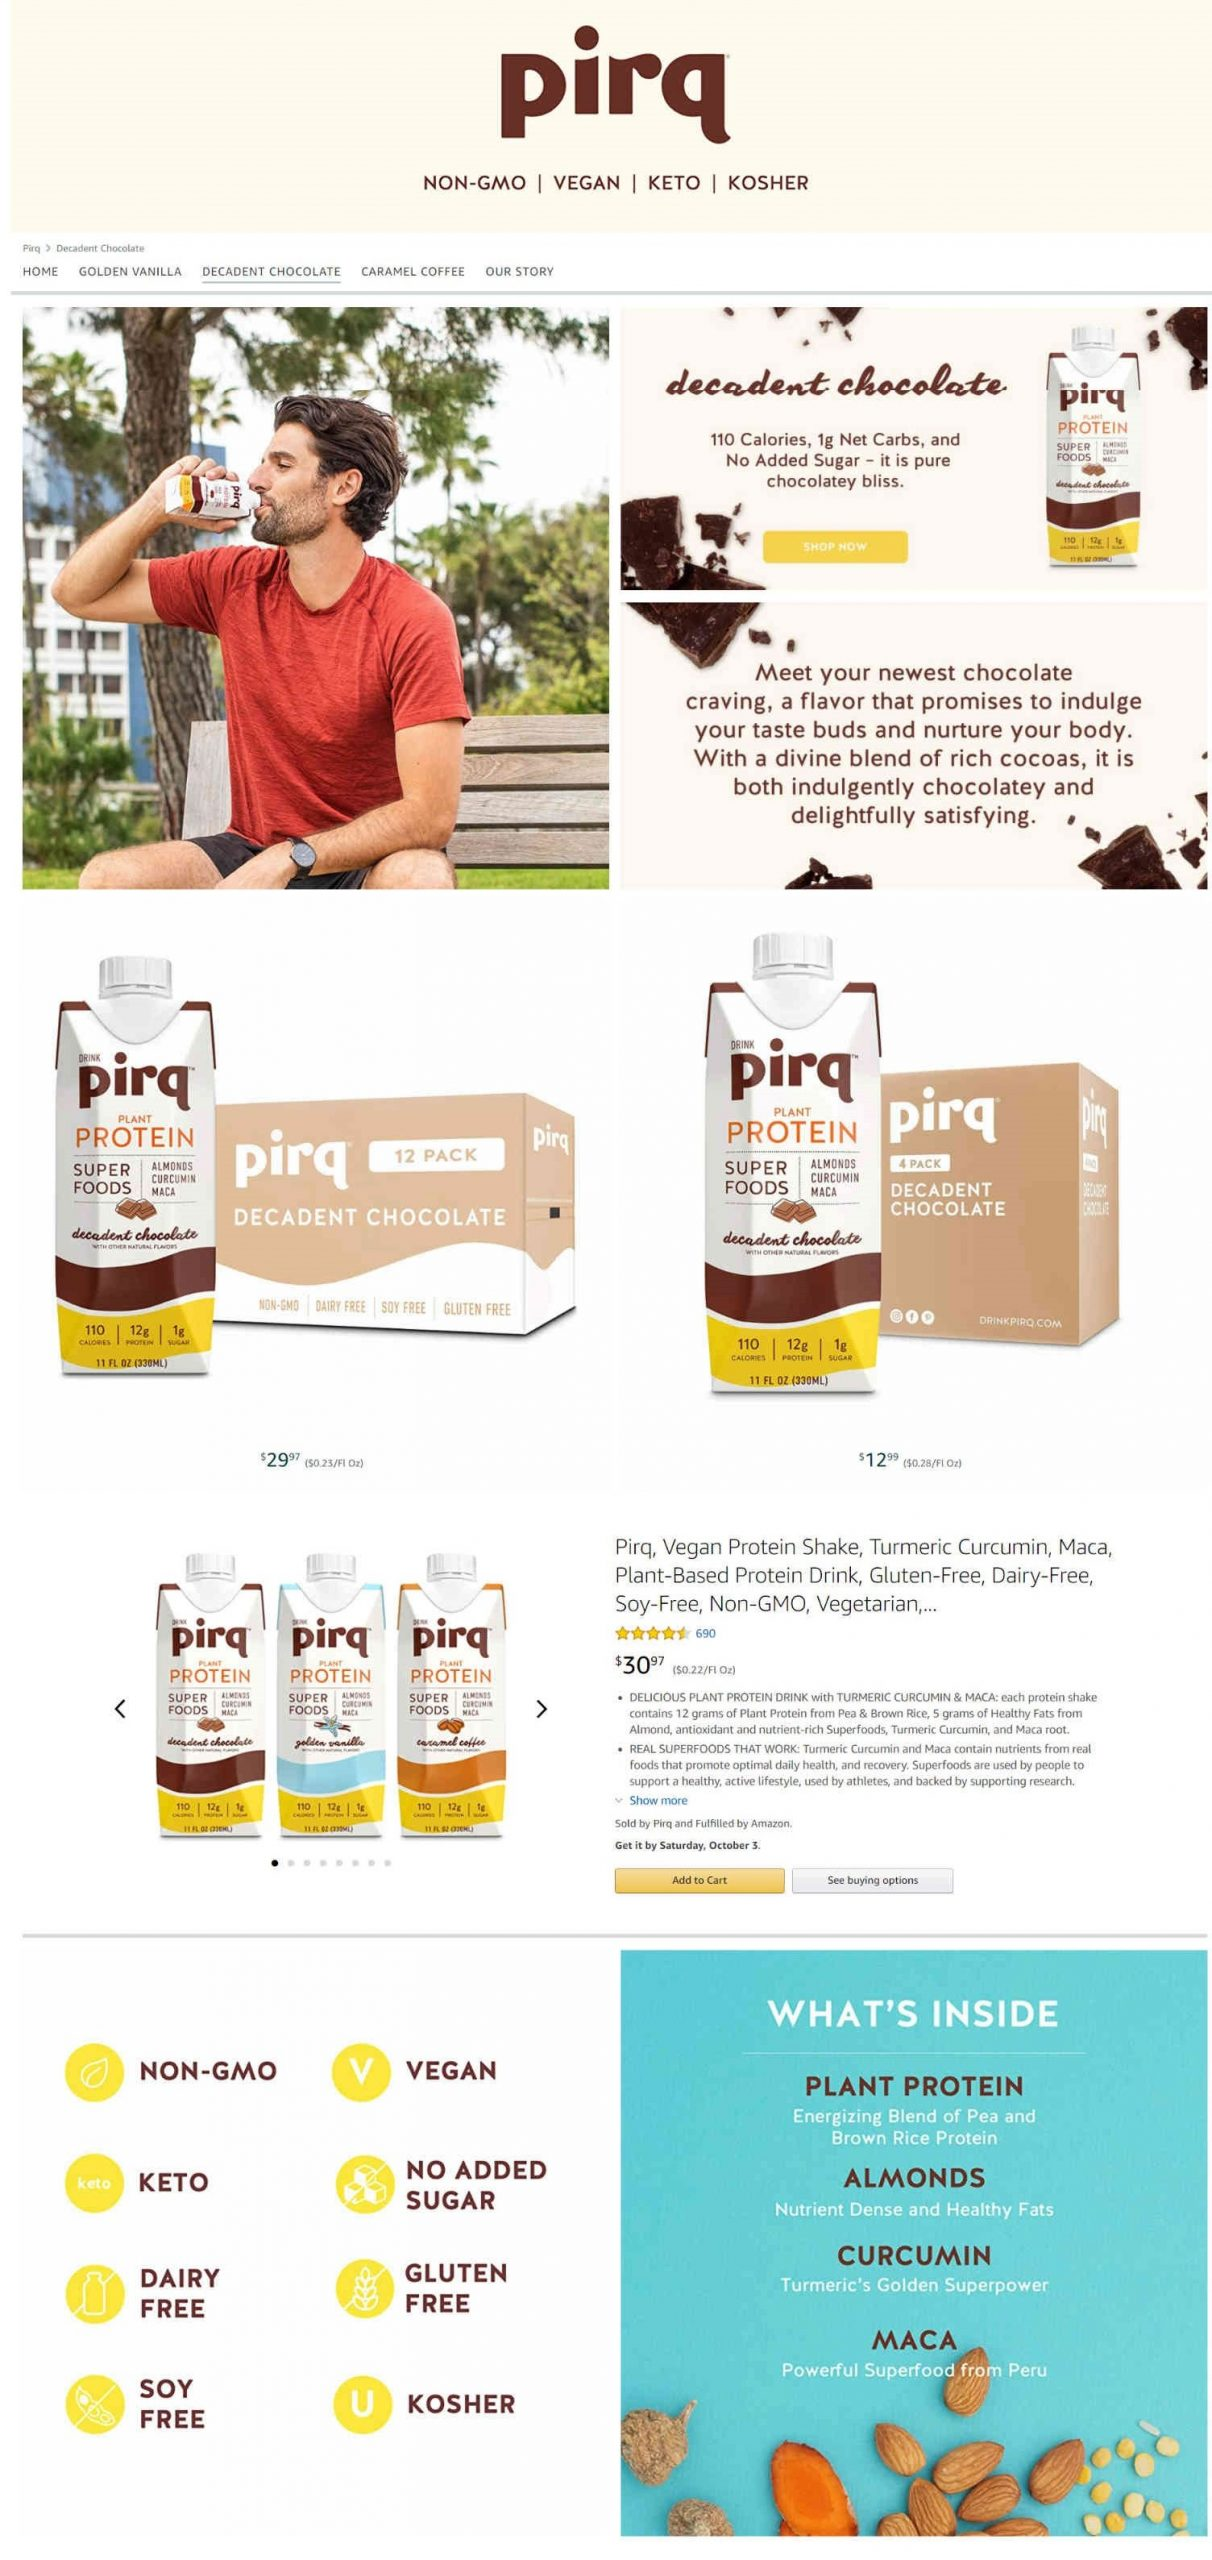 Amazon Storefront Example of Pirq's Decadent Chocolate Product Page